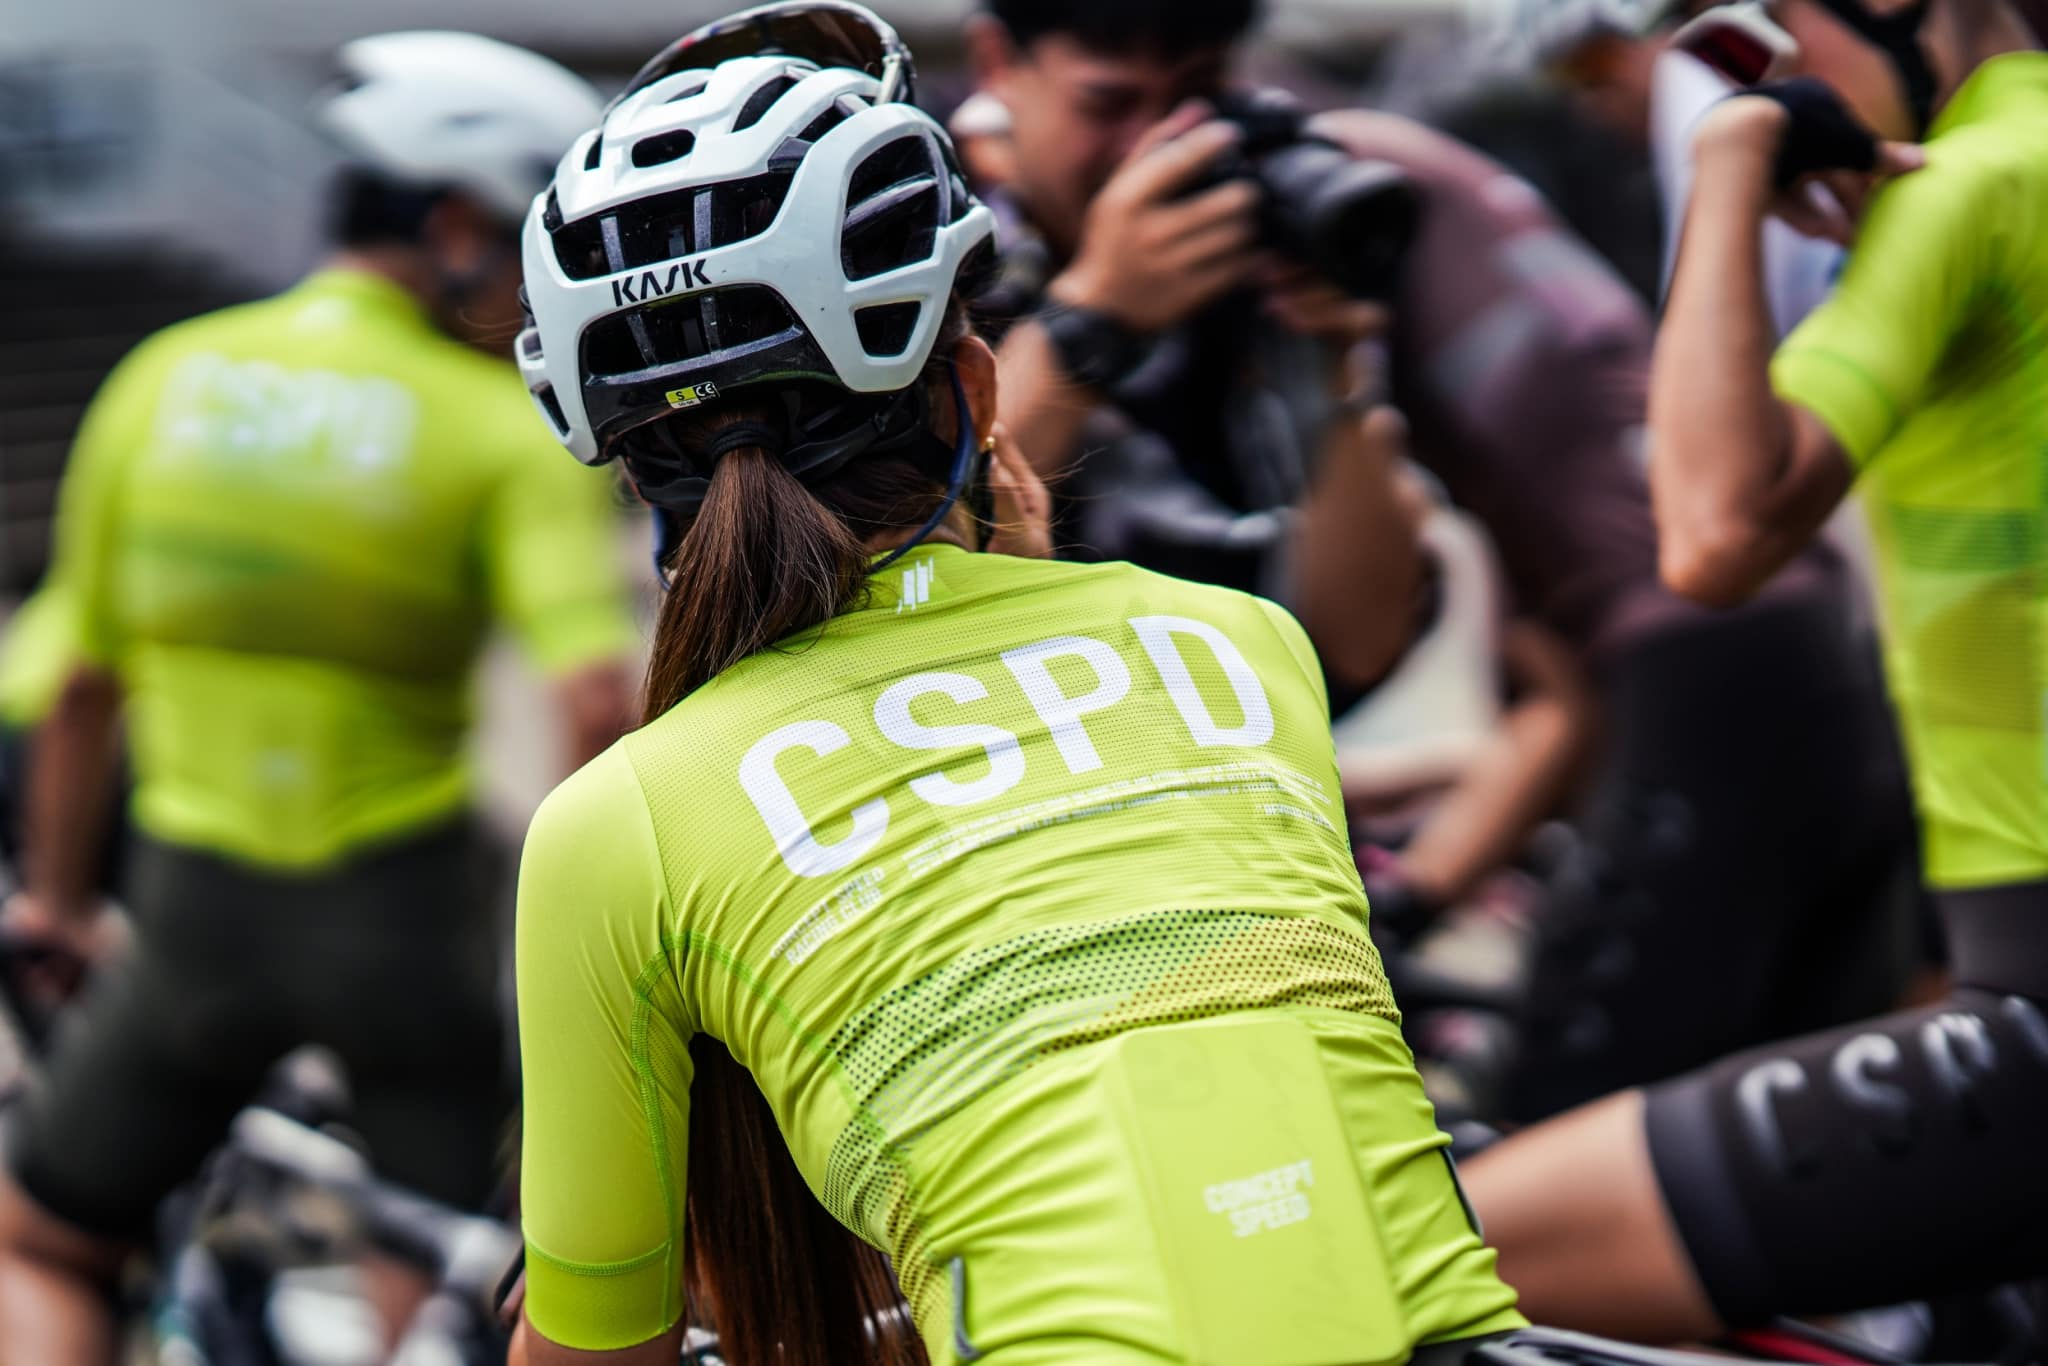 cspd-jersey-lime-pictorial (2).jpg